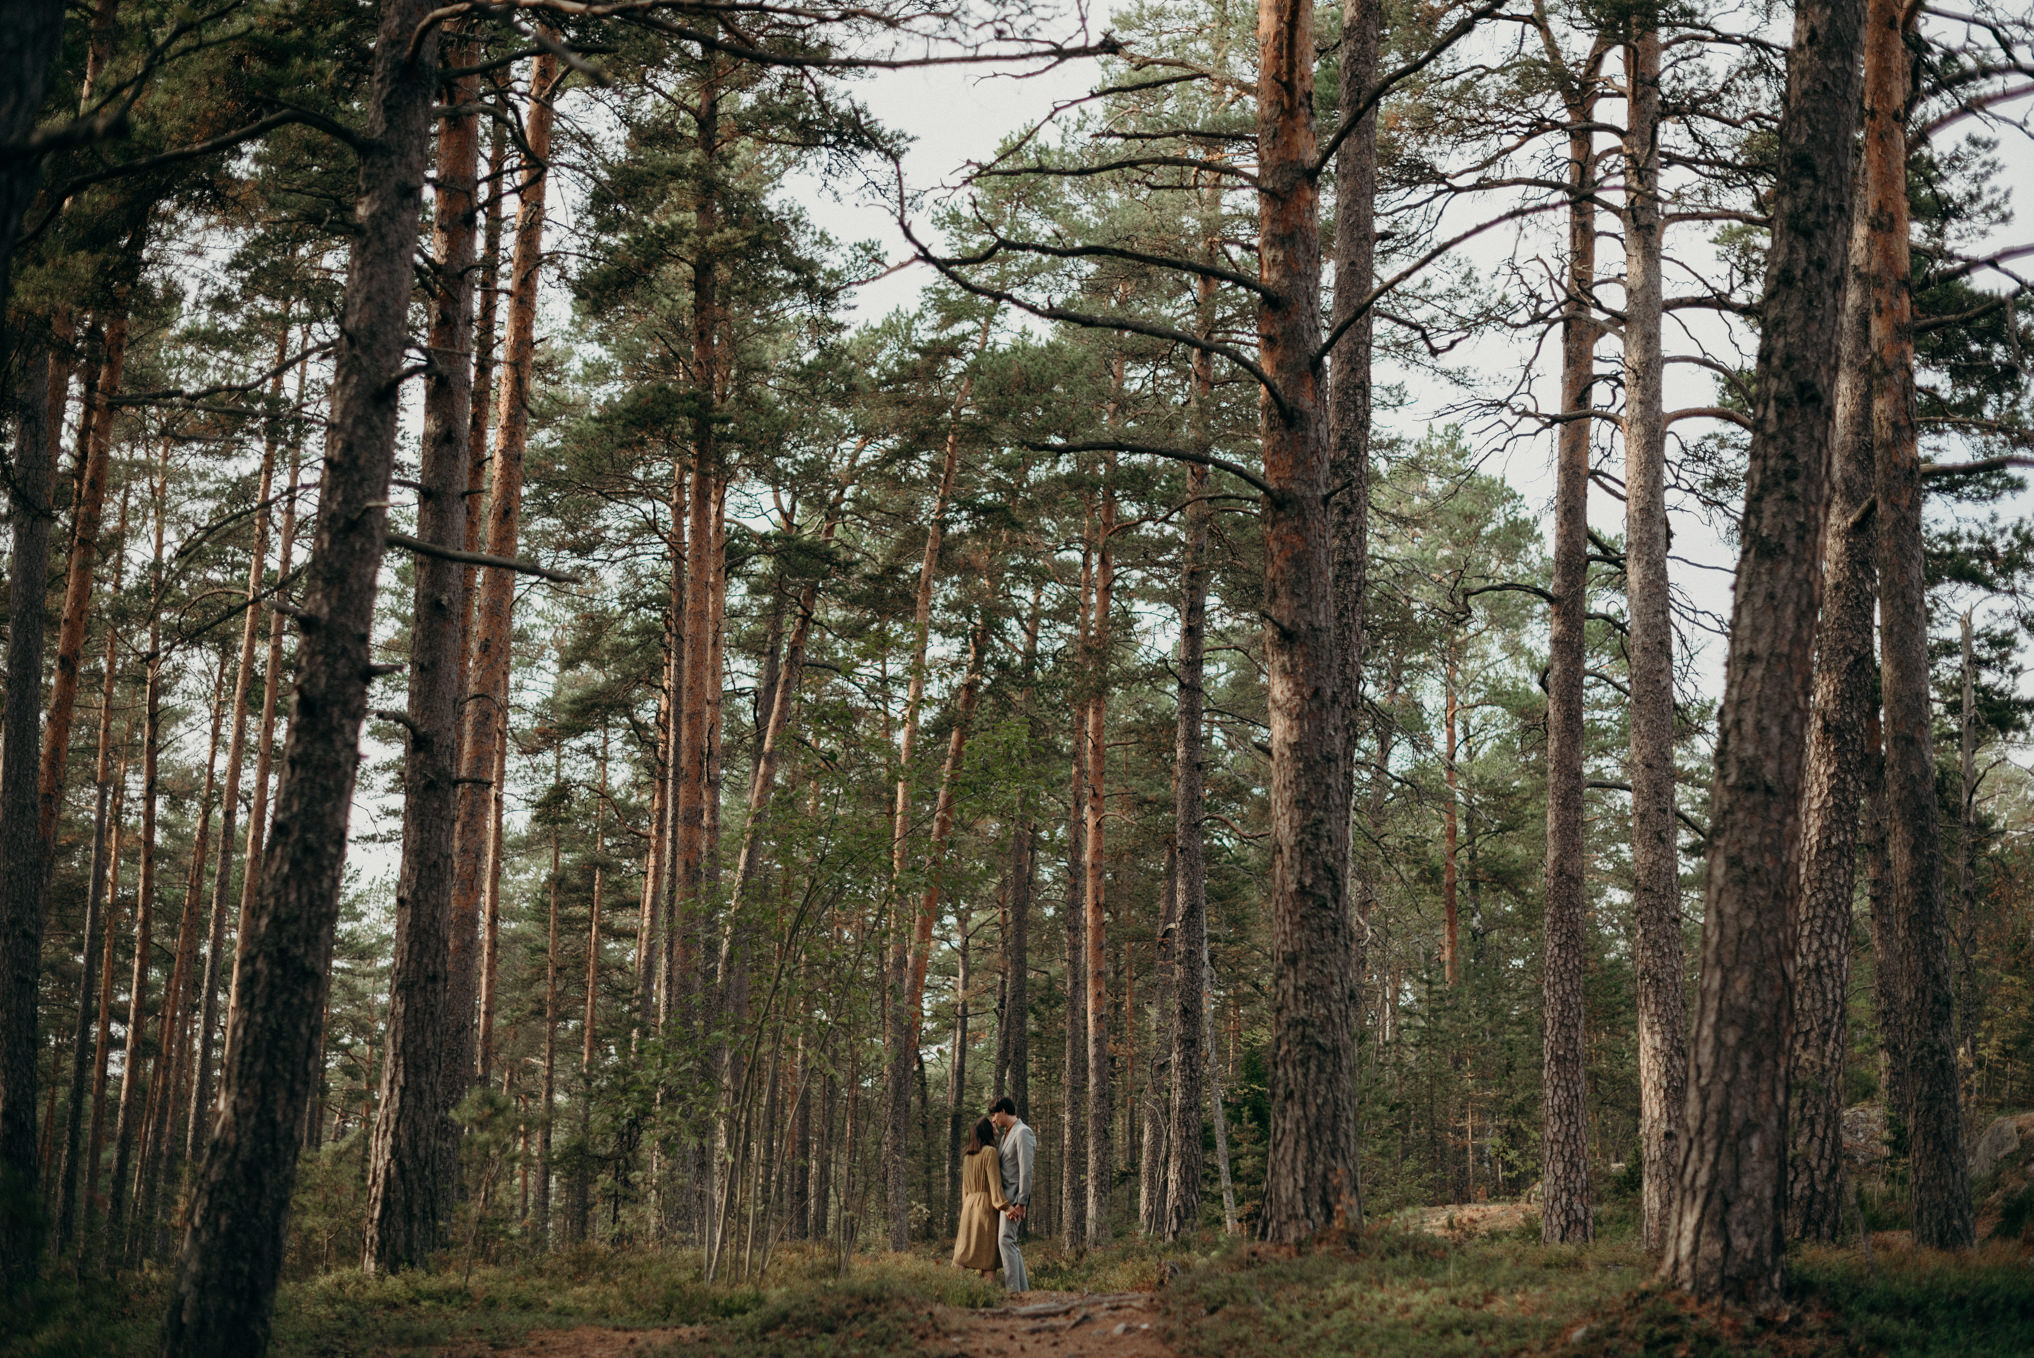 Couple in forest full of pine trees in Finland